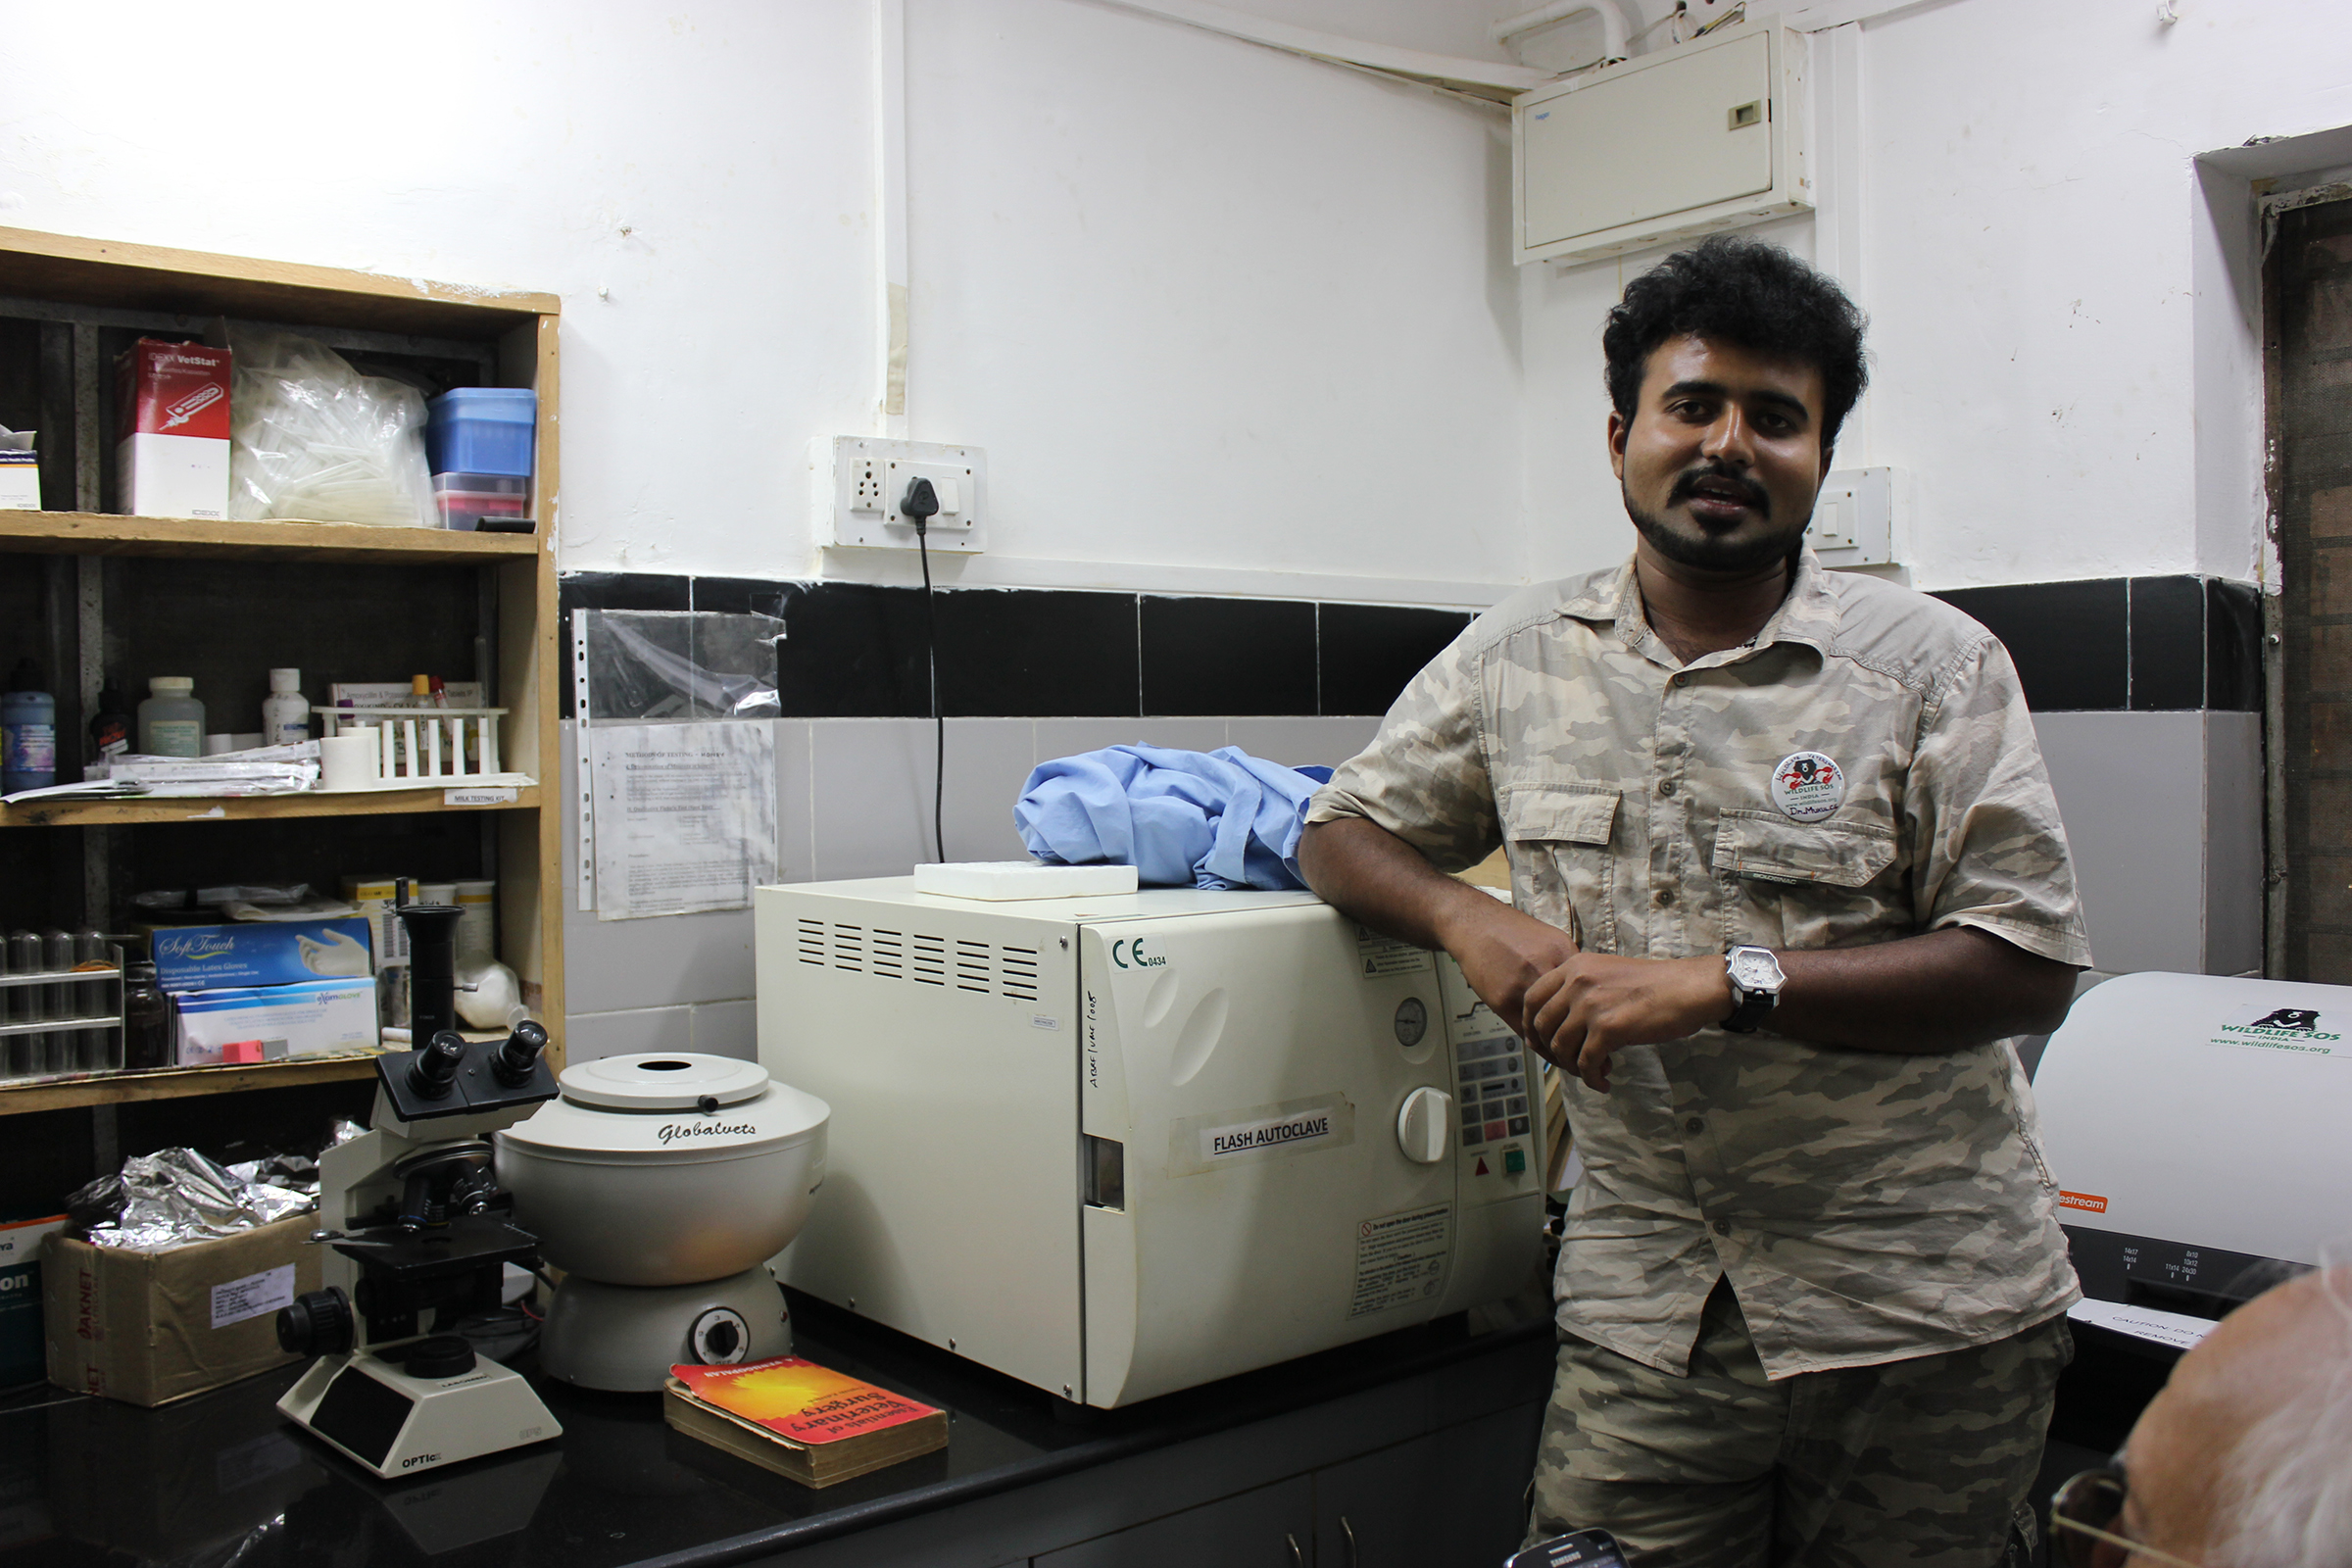 One of Wildlife SOS's dedicated veterinarians. He showed us the bear hospital facility with all its state of the art equipment and machines. Along with treating all ailments and injuries, these doctors give the bears yearly physical exams and each bear has its own electronic medical record! So impressive.